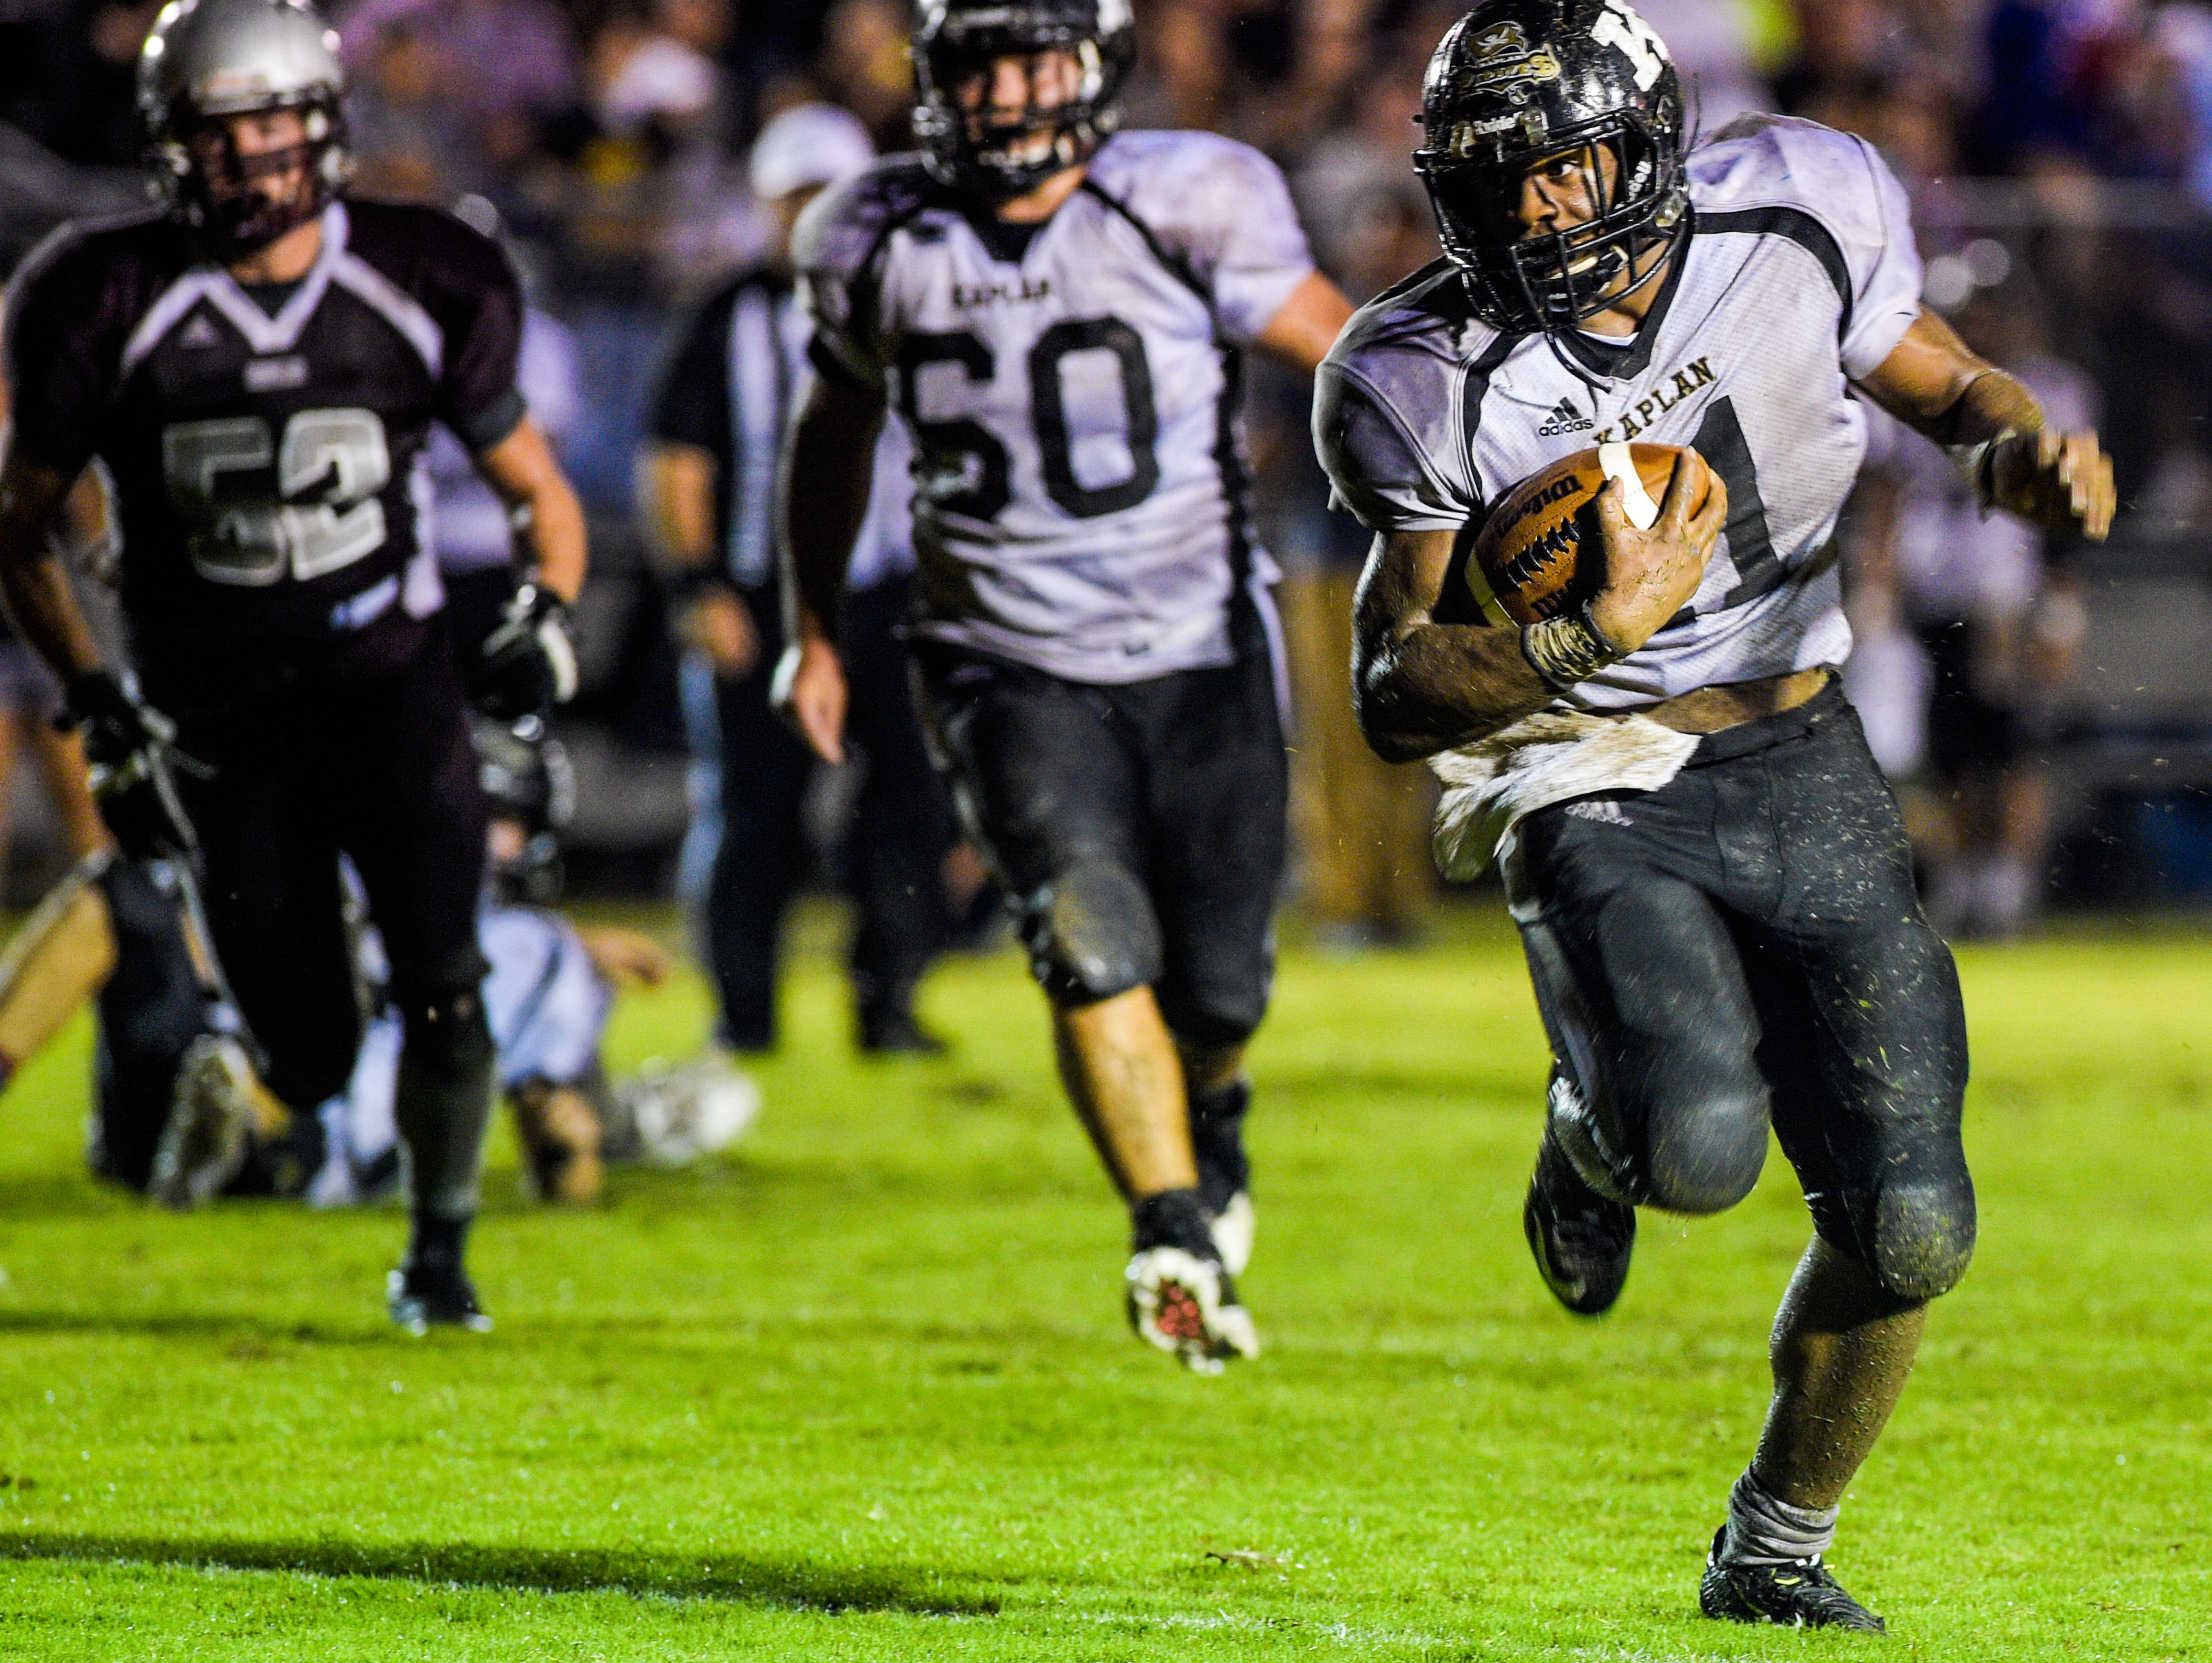 Kaplan running back Julius Johnson (11) runs for a touchdown during an LHSAA football game at Vermilion Catholic High School Friday, Sept. 11, 2015.